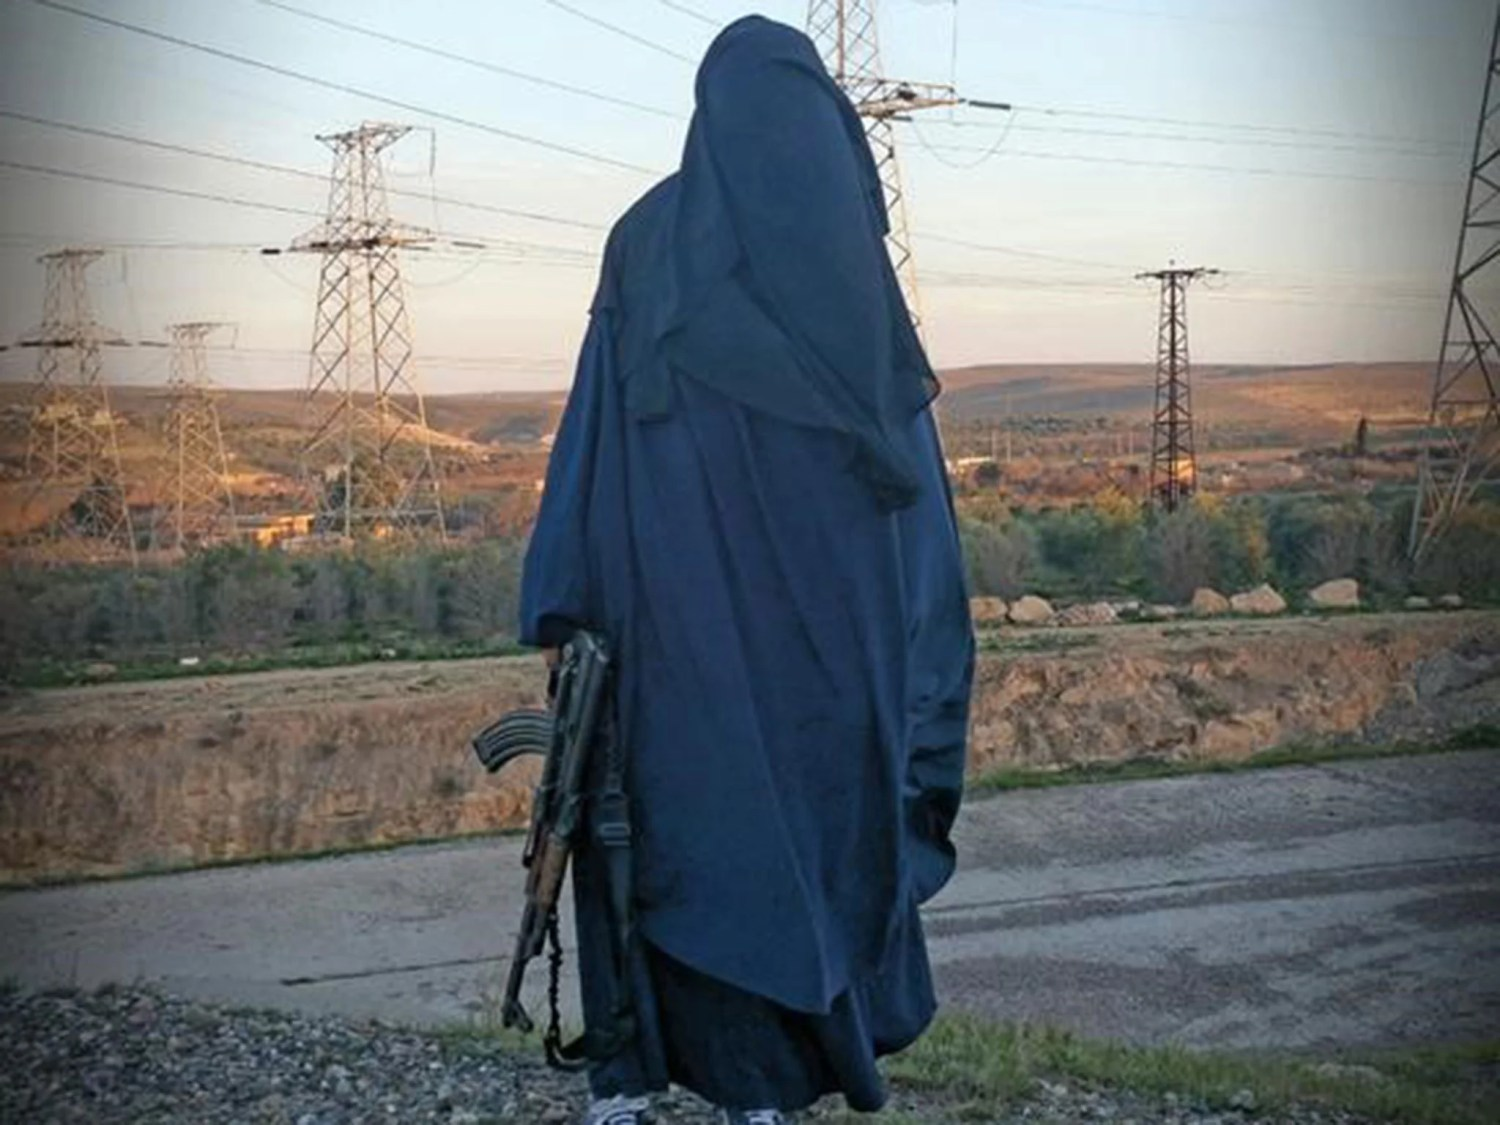 A photo believed to be of Tooba Gondal, which was posted on her Twitter account under the name Umm Muthanna al-Britannia